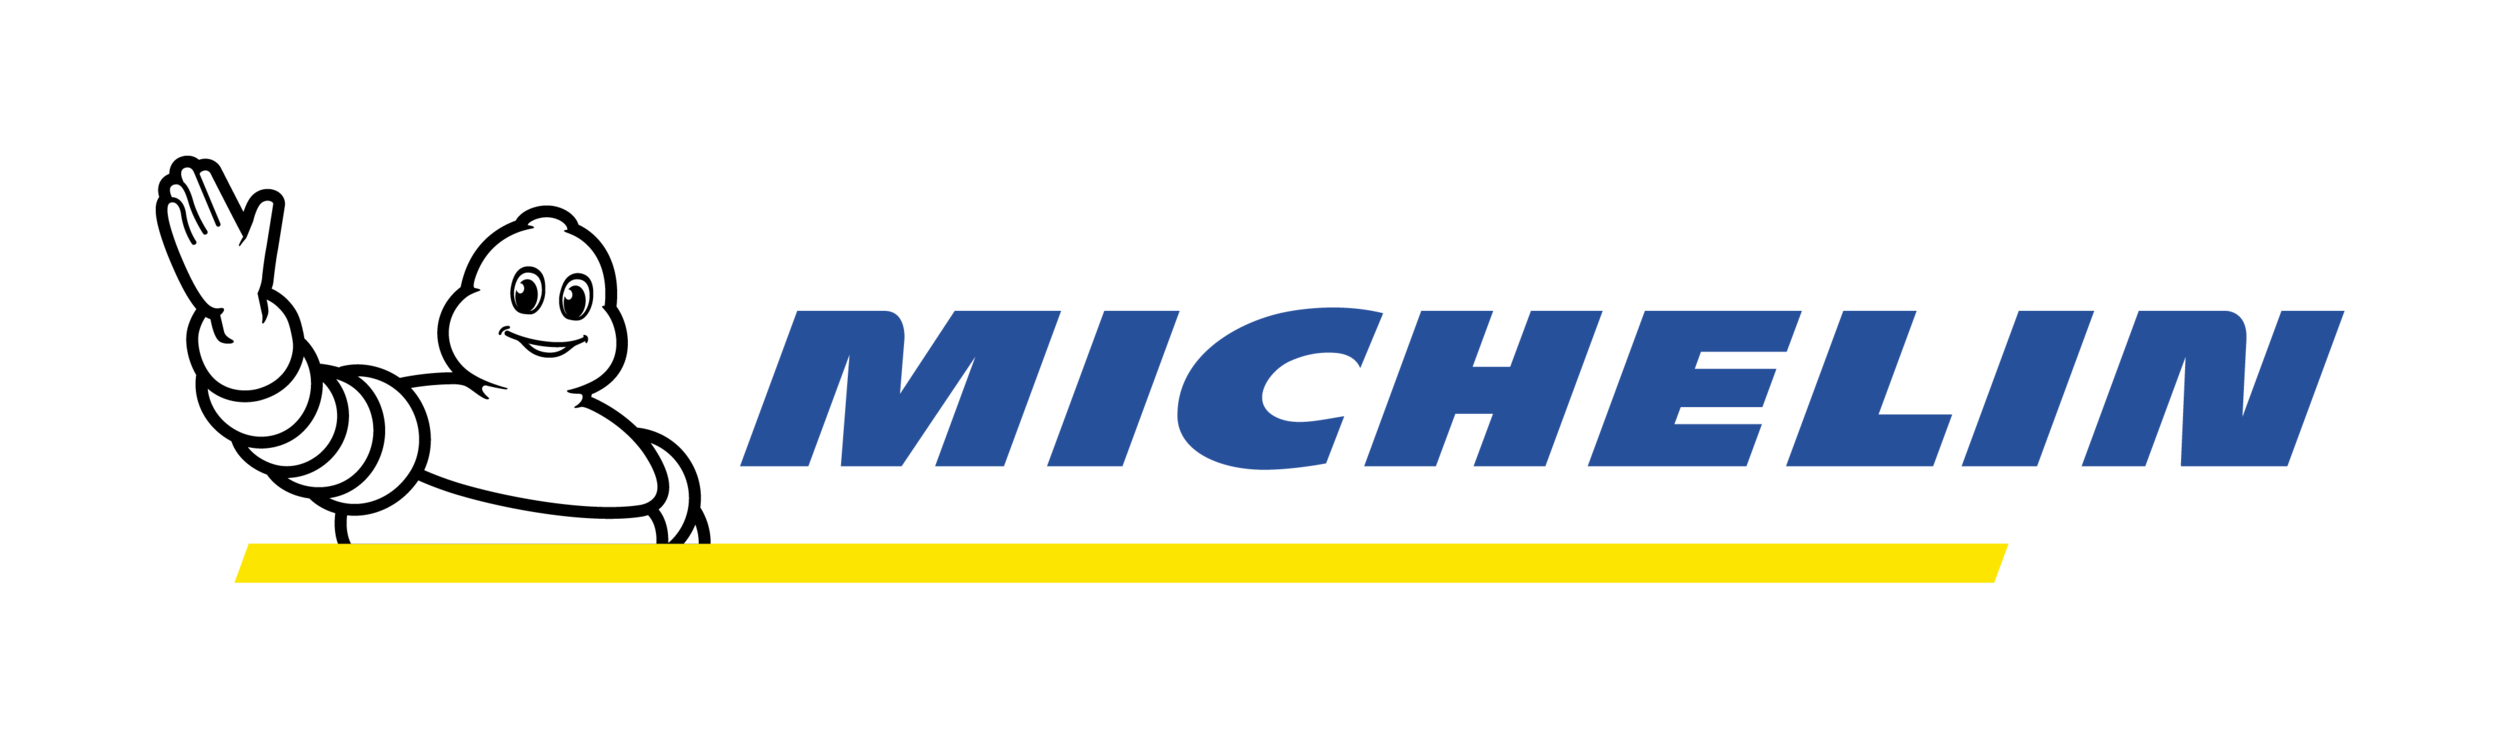 michelin-png-tyres-from-michelin-3739.png